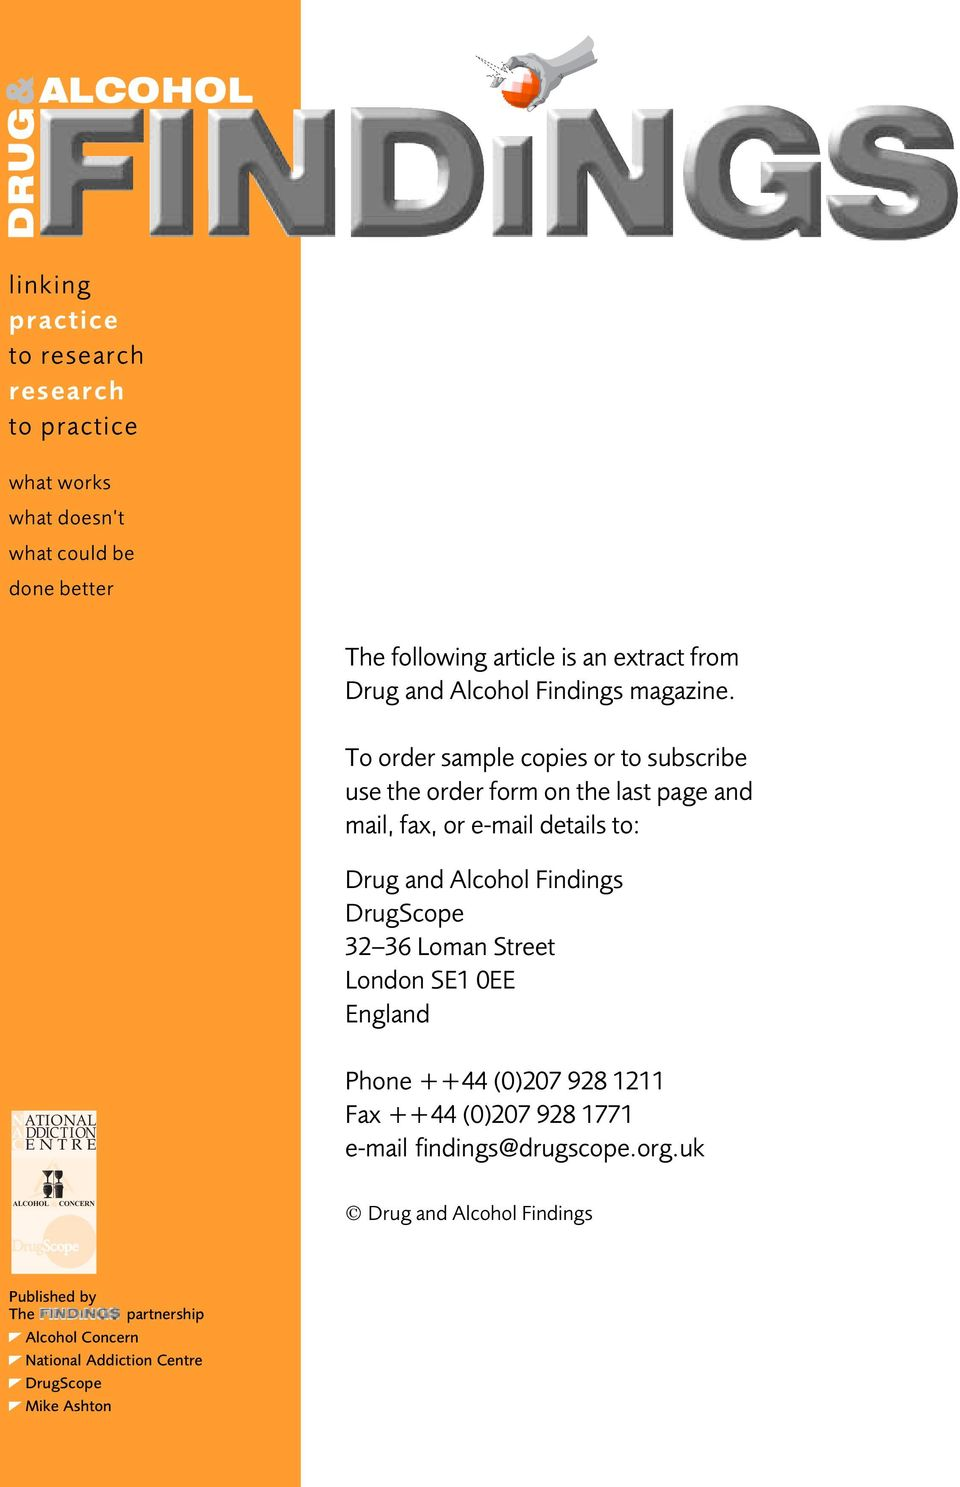 To order sample copies or to subscribe use the order form on the last page and mail, fax, or e-mail details to: Drug and Alcohol Findings DrugScope 32 36